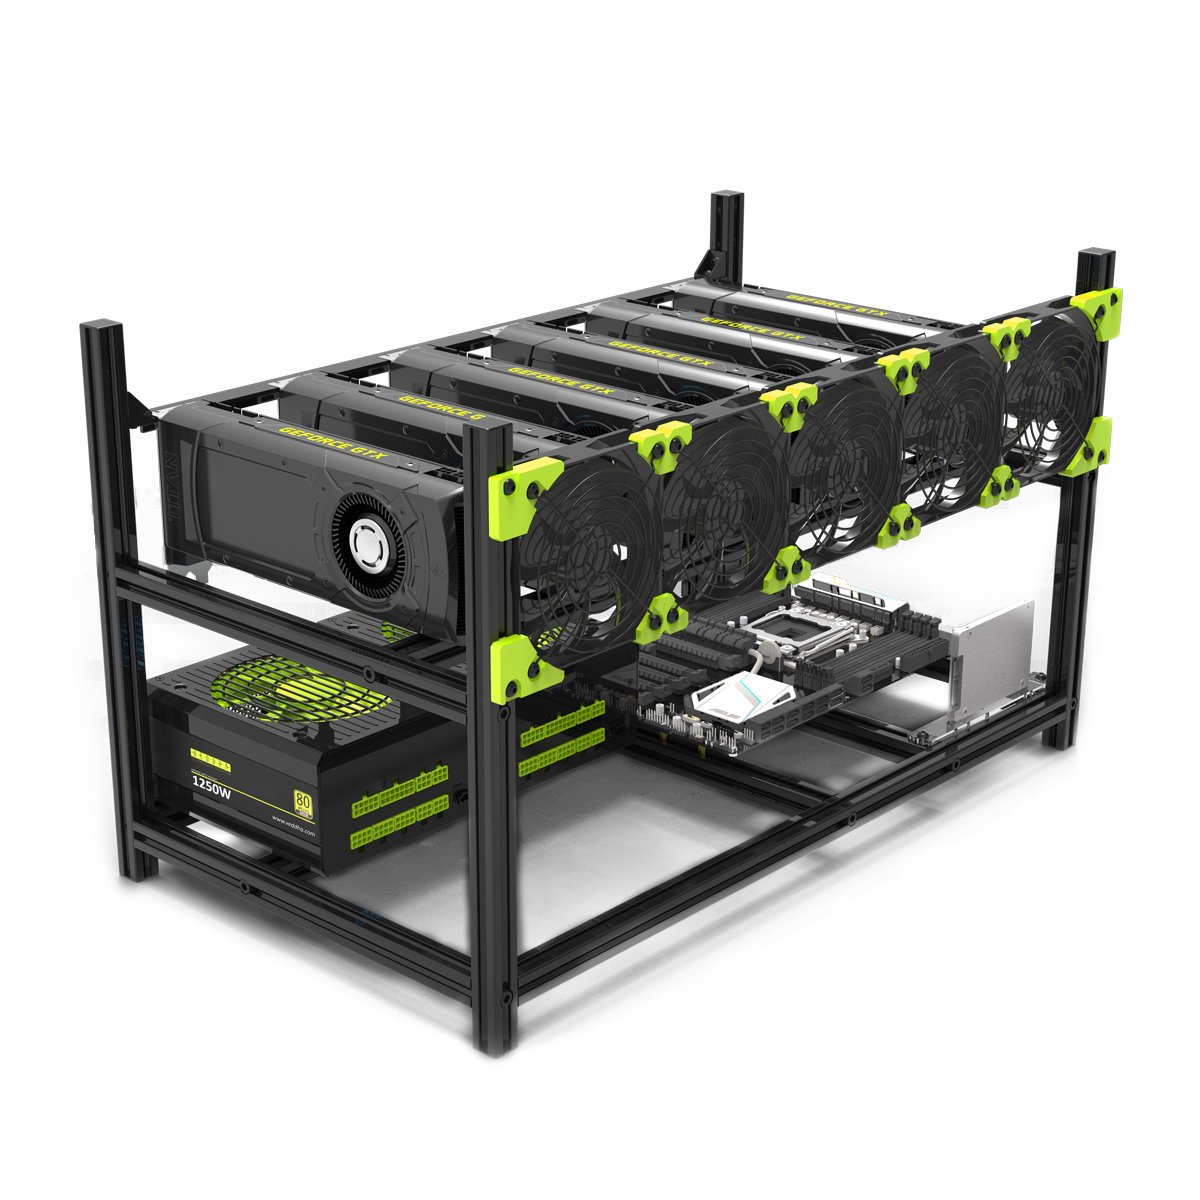 6 GPU Mining Case Rig Aluminum Stackable Preassembled Open Air Frame For Ethereum(ETH)/ETC/ZCash/Monero/BTC Easy Mounting Edition(Just 10 minutes) by Astarin